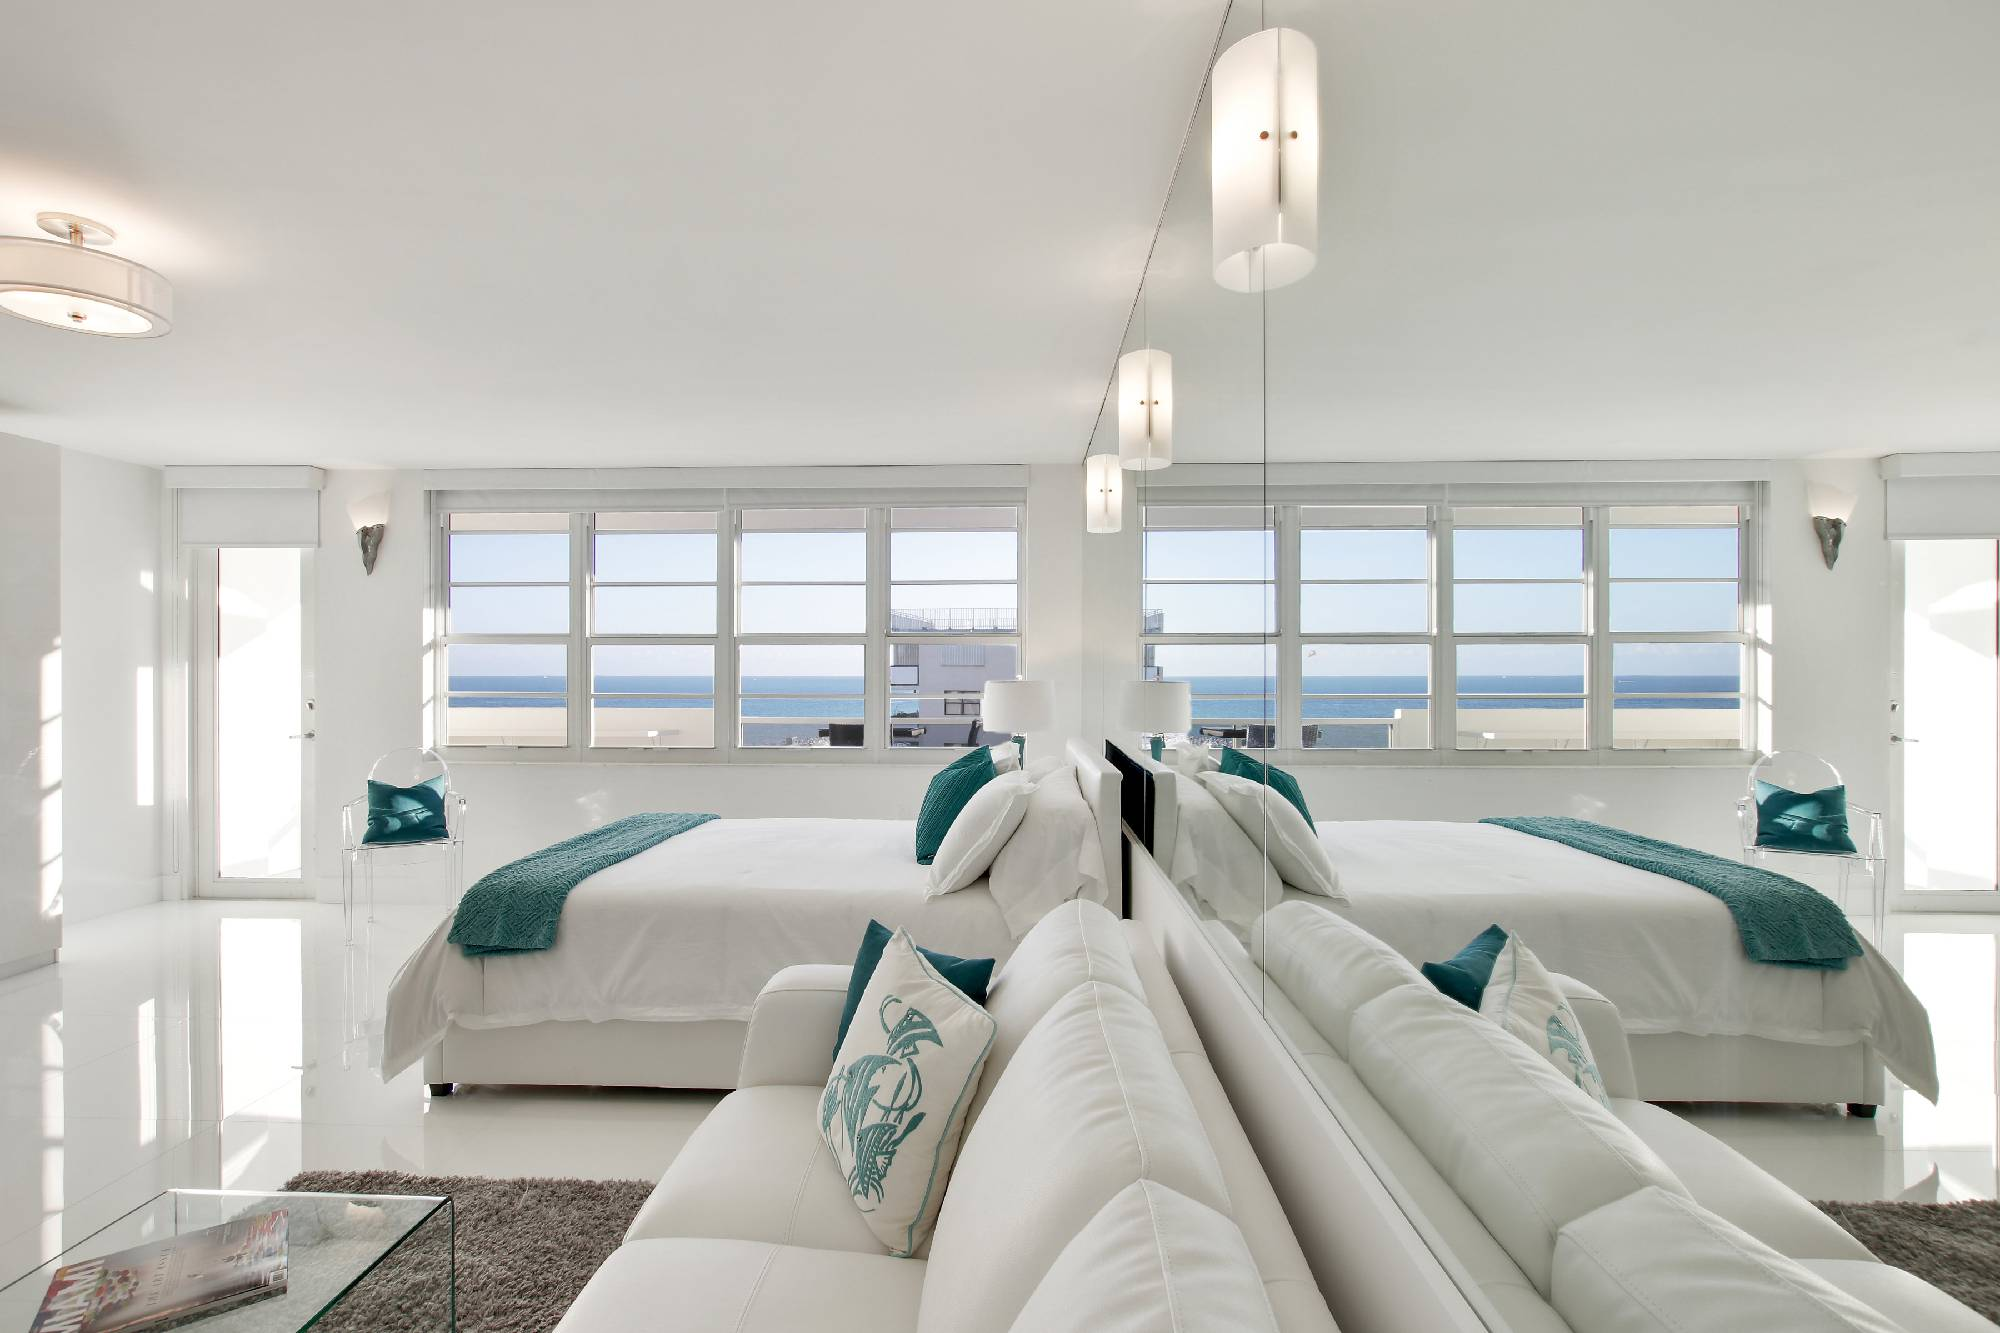 wide angle view of living room with mirrors and ocean view